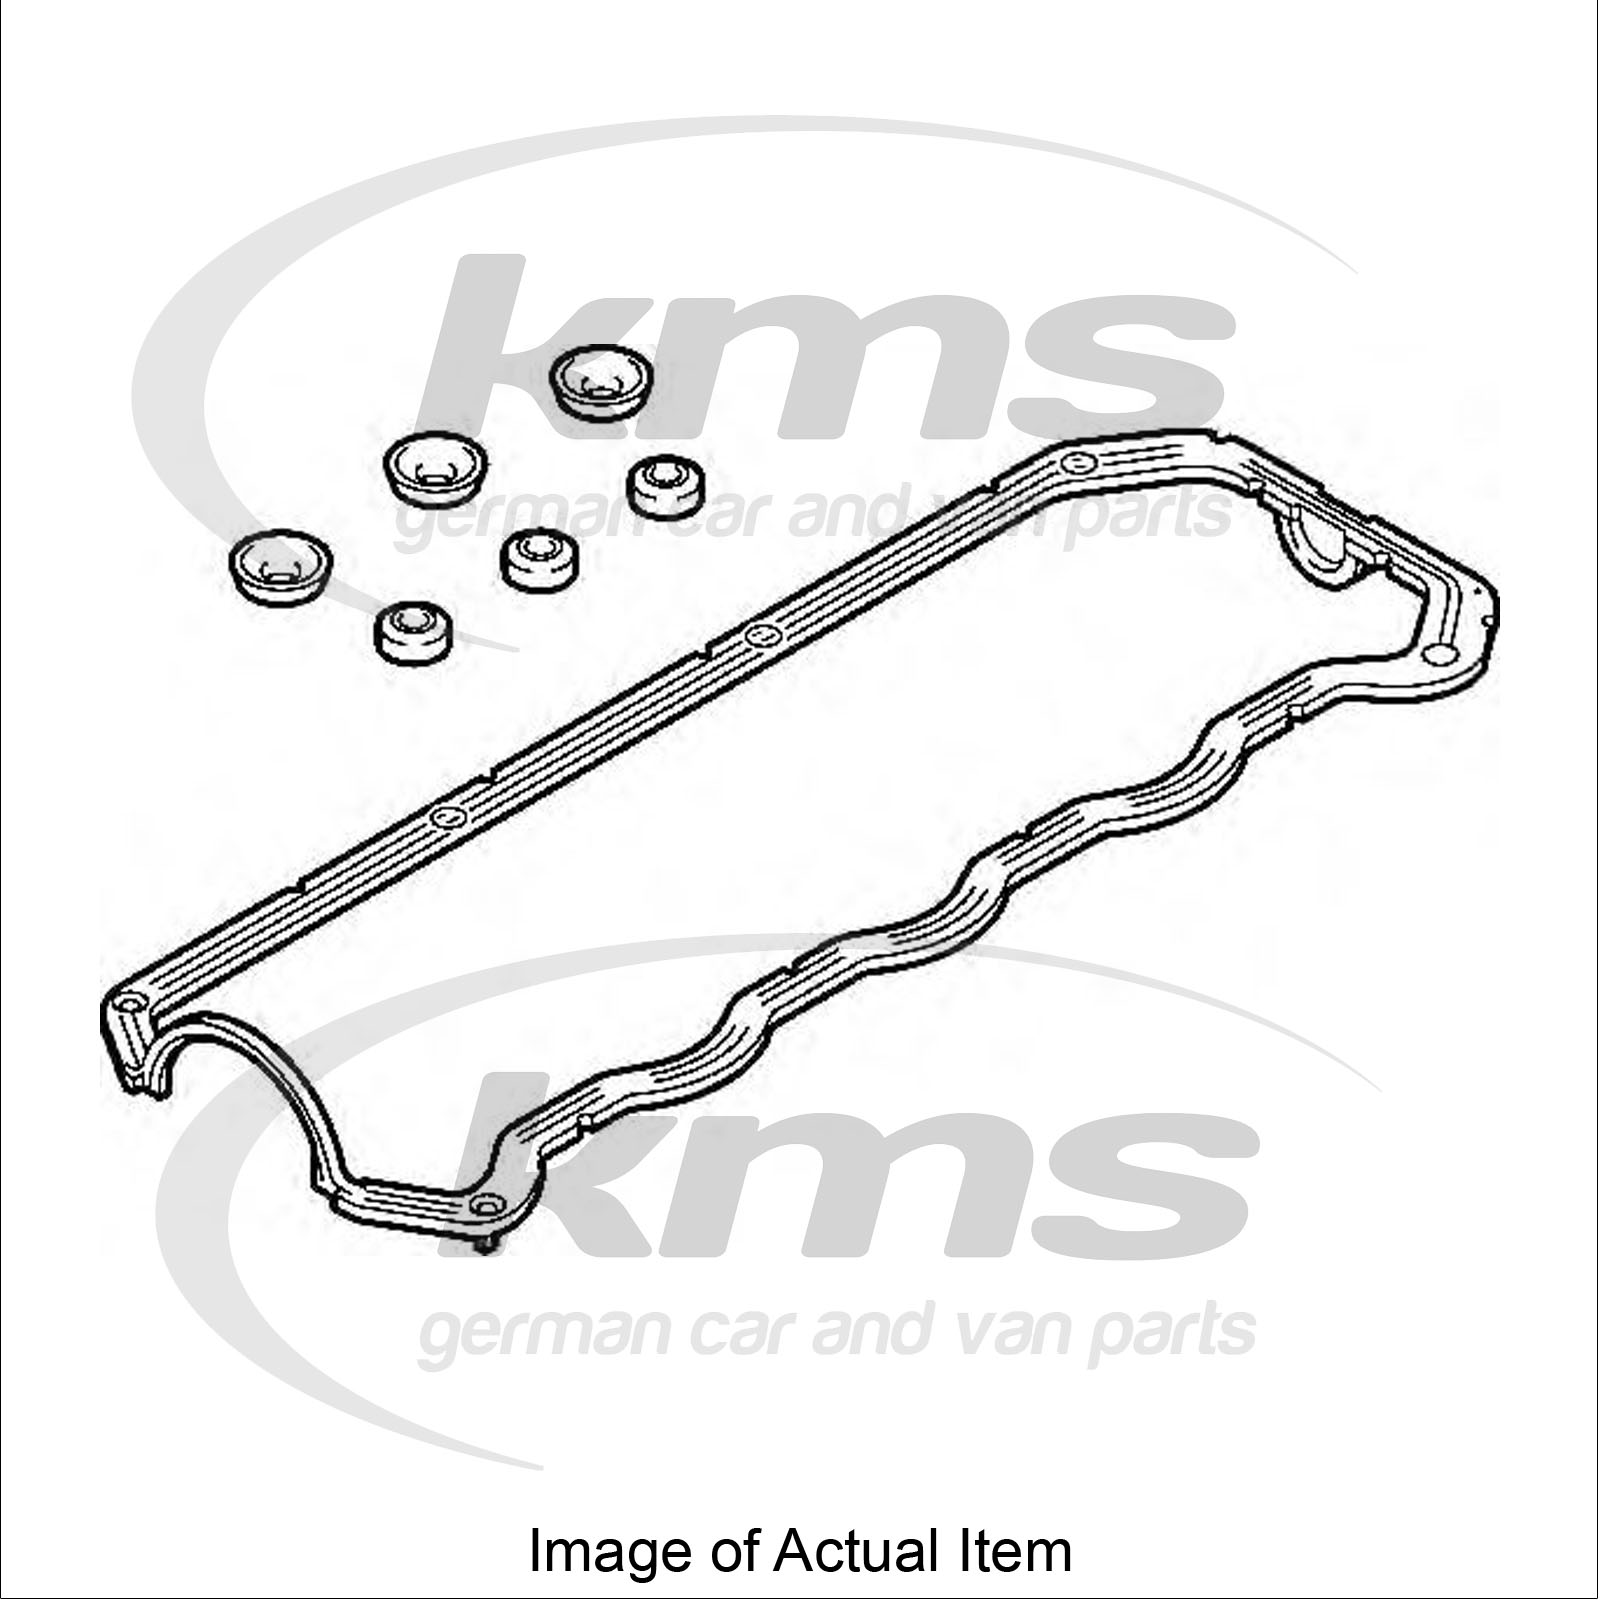 valve cover gasket vw polo 6n2 1 9 sdi hatchback 64 bhp top german quality ebay. Black Bedroom Furniture Sets. Home Design Ideas